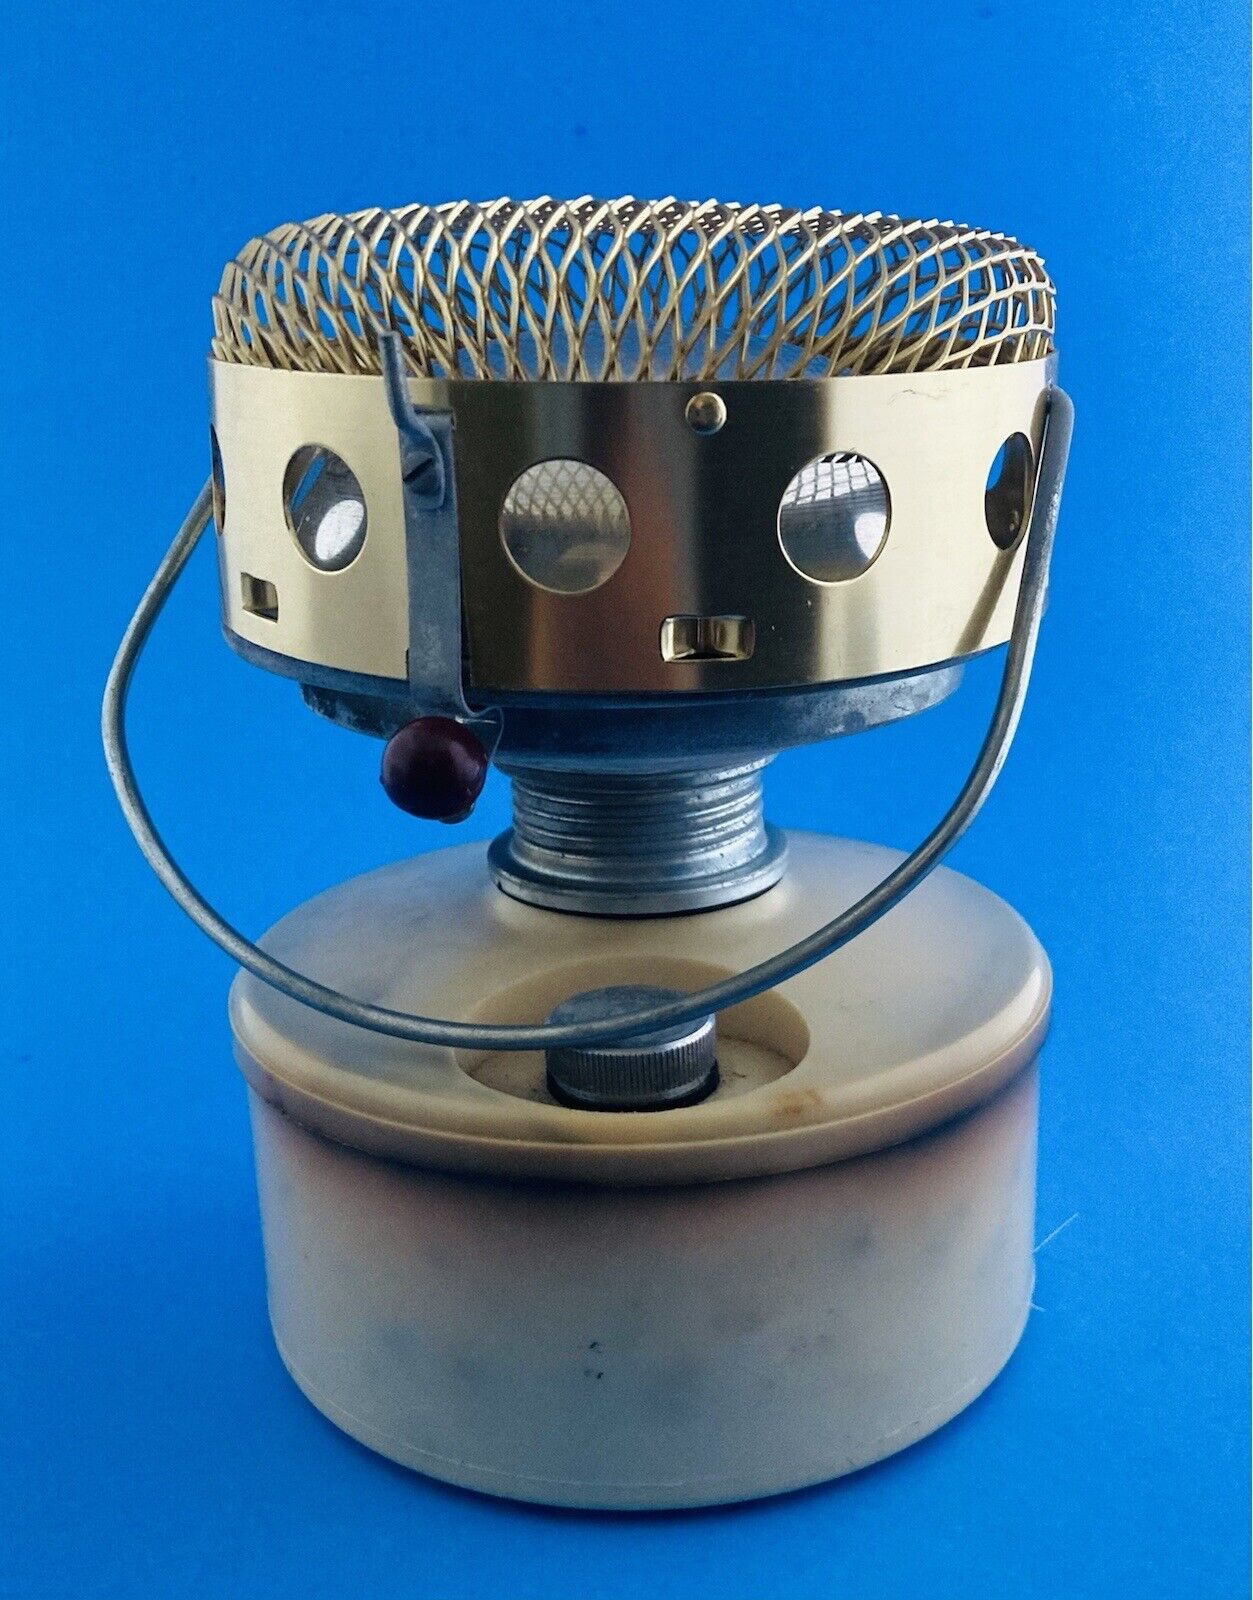 """Therm""""X safety heater Type 21 S.L.R.C, CALUIRE No. 12638 Made in FRANCE"""